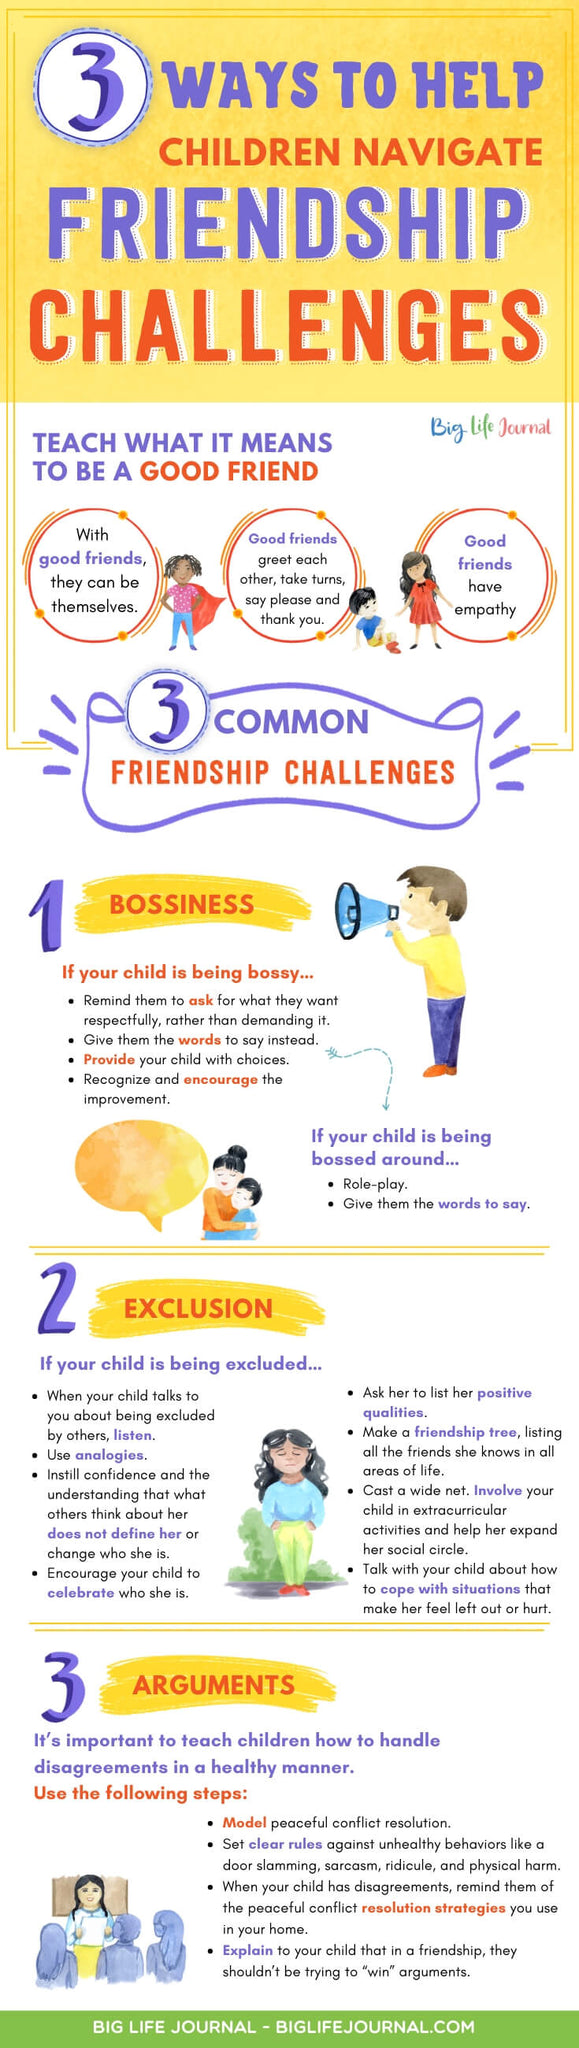 3 Ways to Help Children Navigate Friendship Challenges